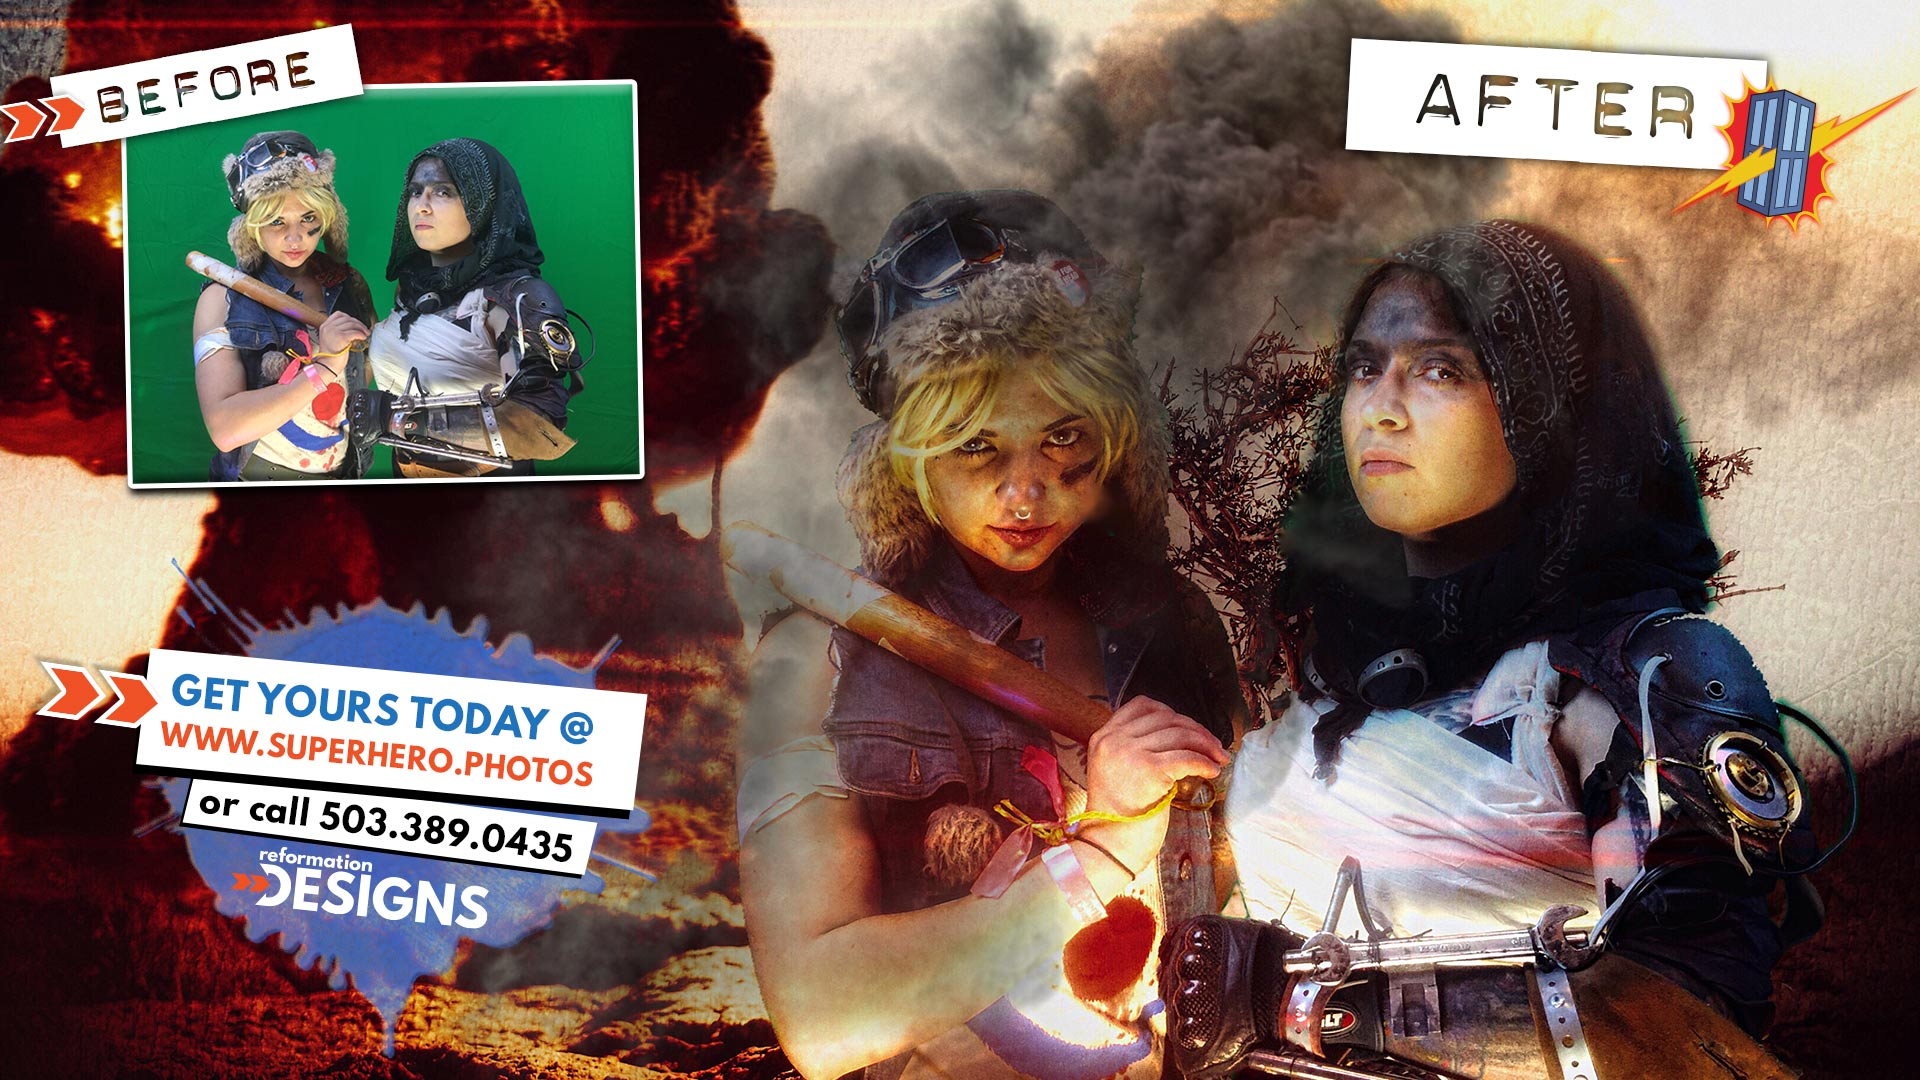 SUPERHERO PHOTOBOOTH BY REFORMATION DESIGNS - #7 -Tank Girl and Mad Max Cosplay - Northwest Comic Fest - JUNE 2015